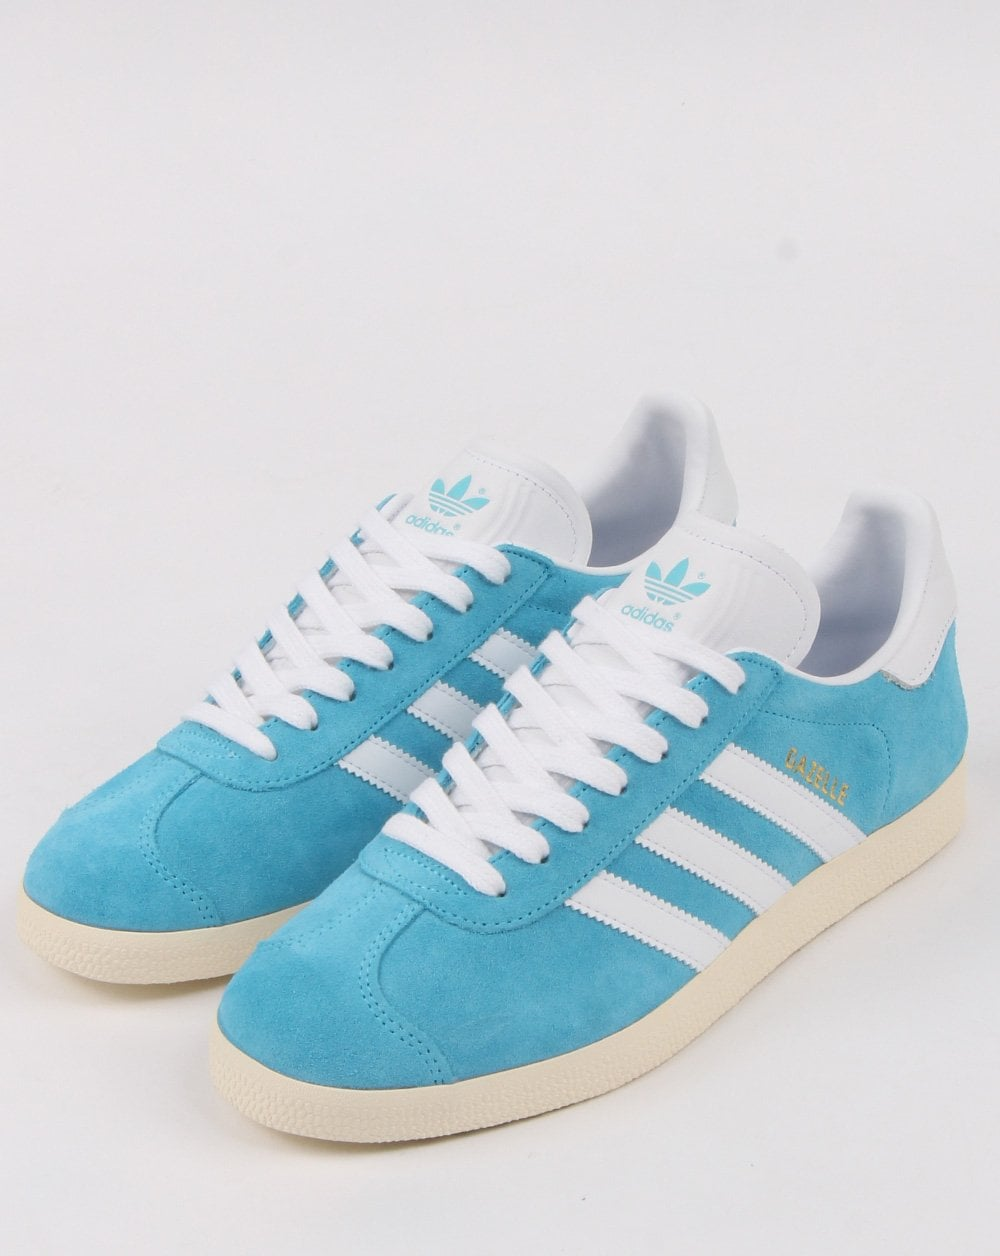 41206c123356 Adidas Gazelle Trainers Bright Cyan White